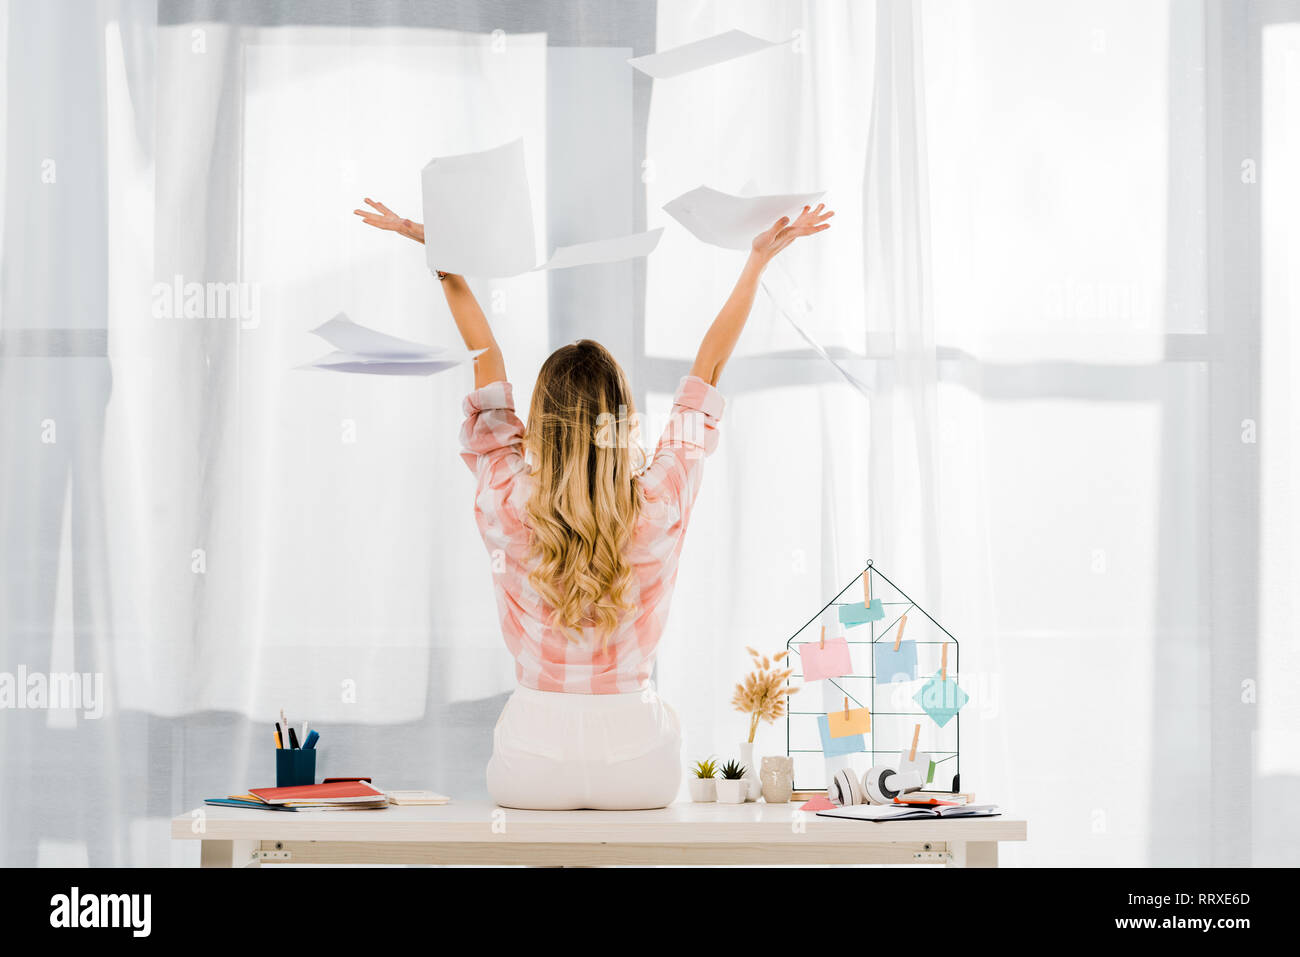 Back view of woman in checkered shirt sitting on table and throwing out documents - Stock Image